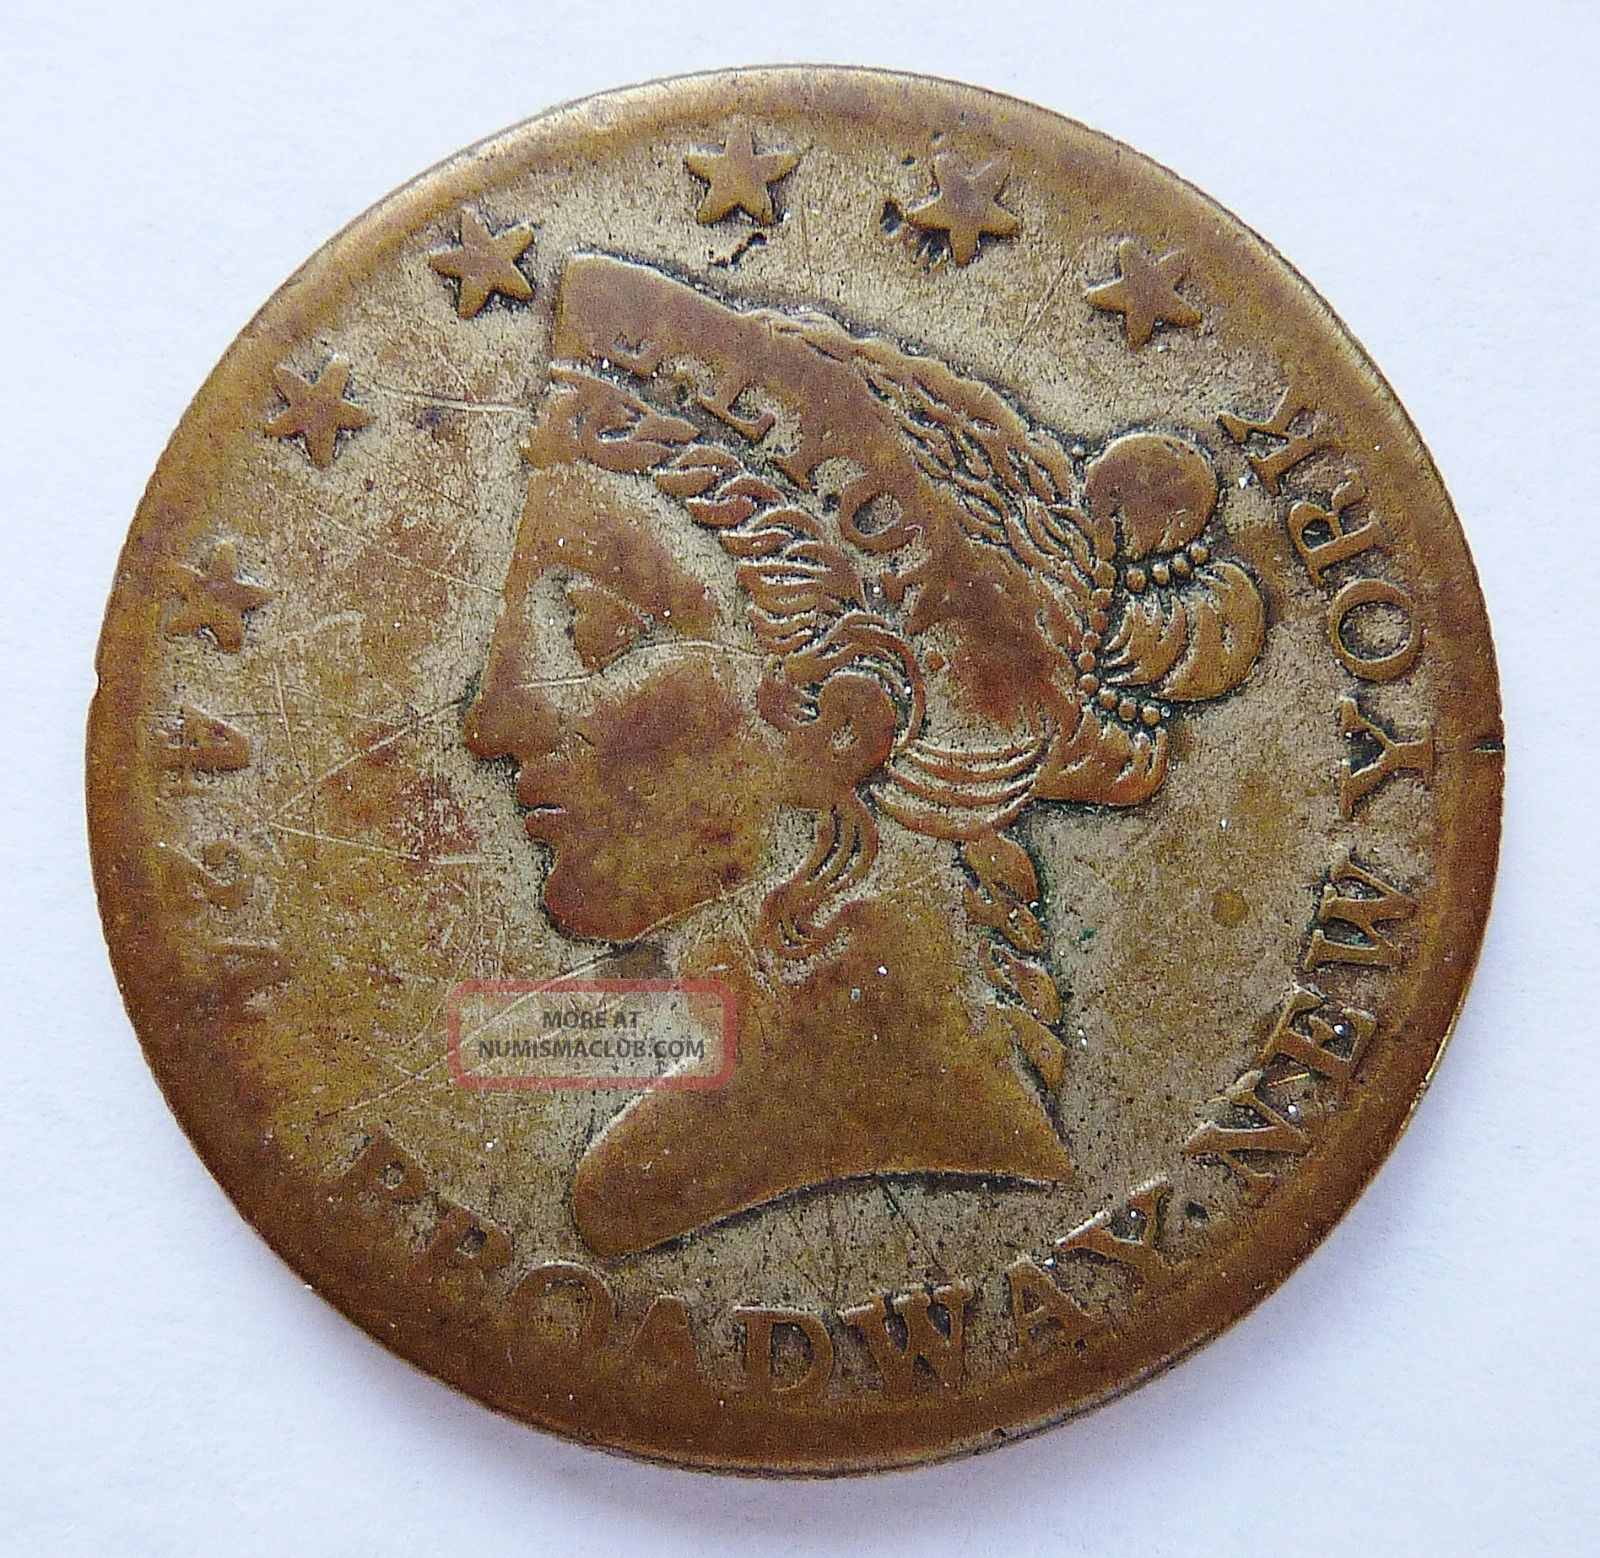 1850 - 59 E.  Lyon - York - Magnetic Powder Merchant / Trade Token 28 - Mm Exonumia photo